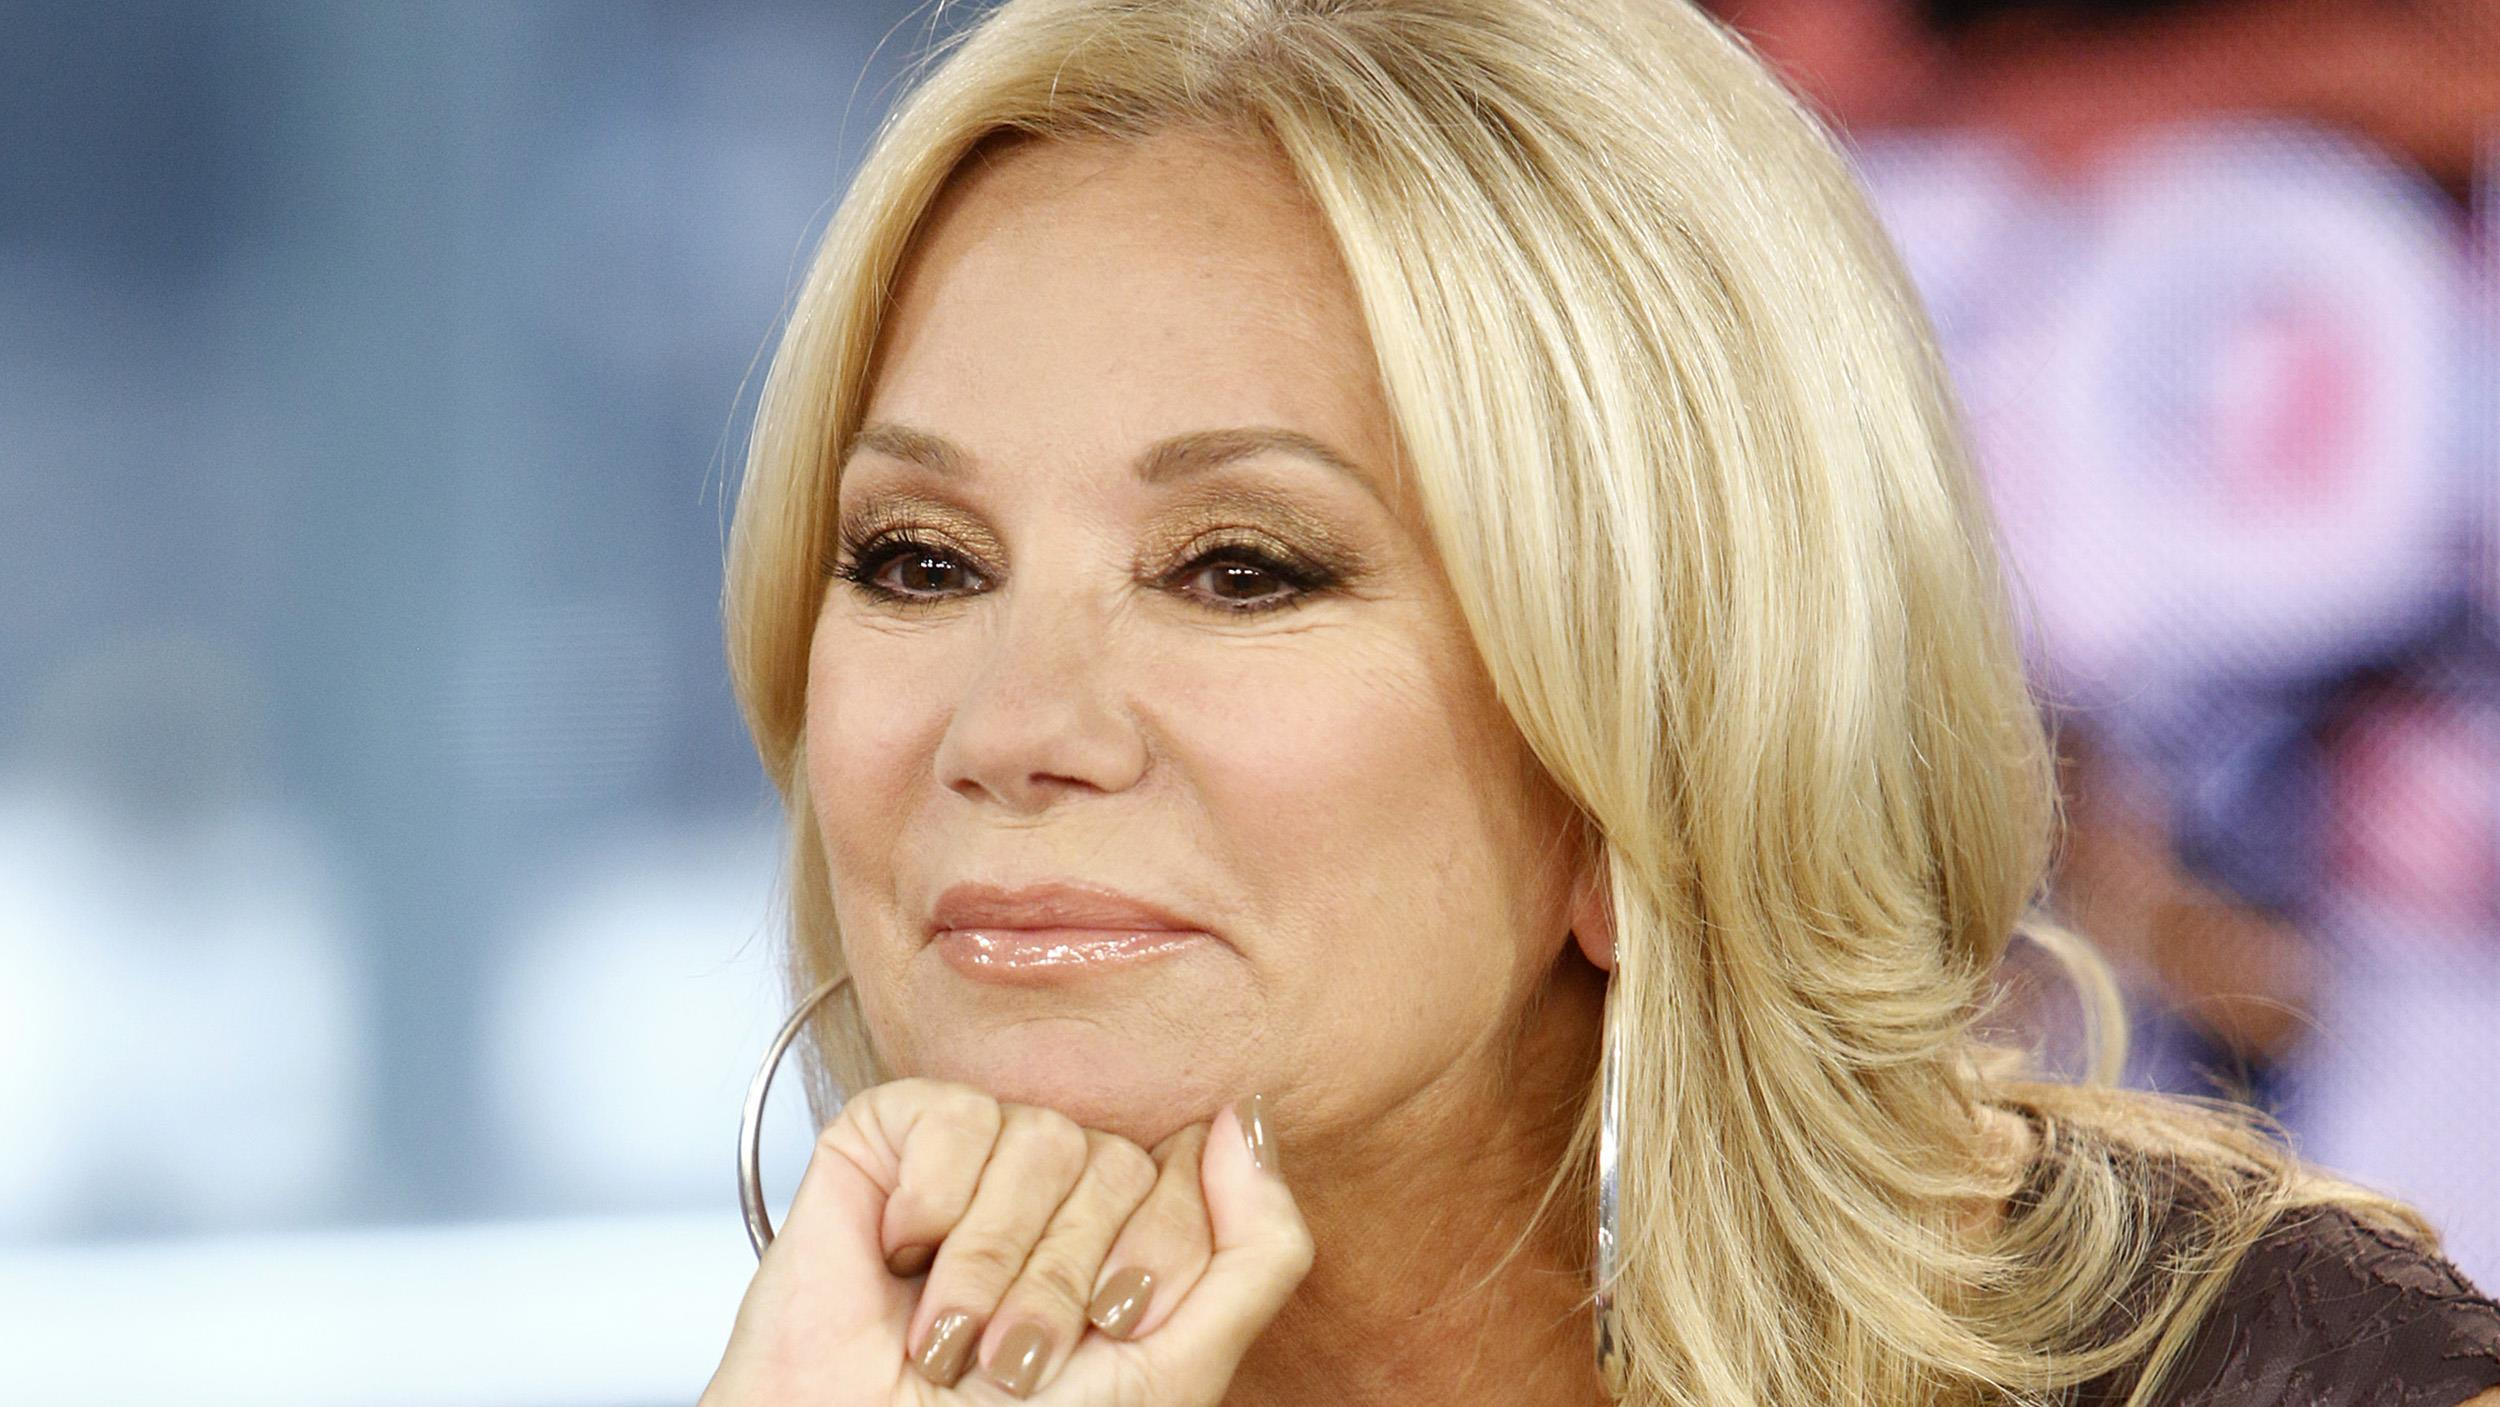 Kathie Lee Gifford Hairstyle Kathie Lee Gifford's Eye